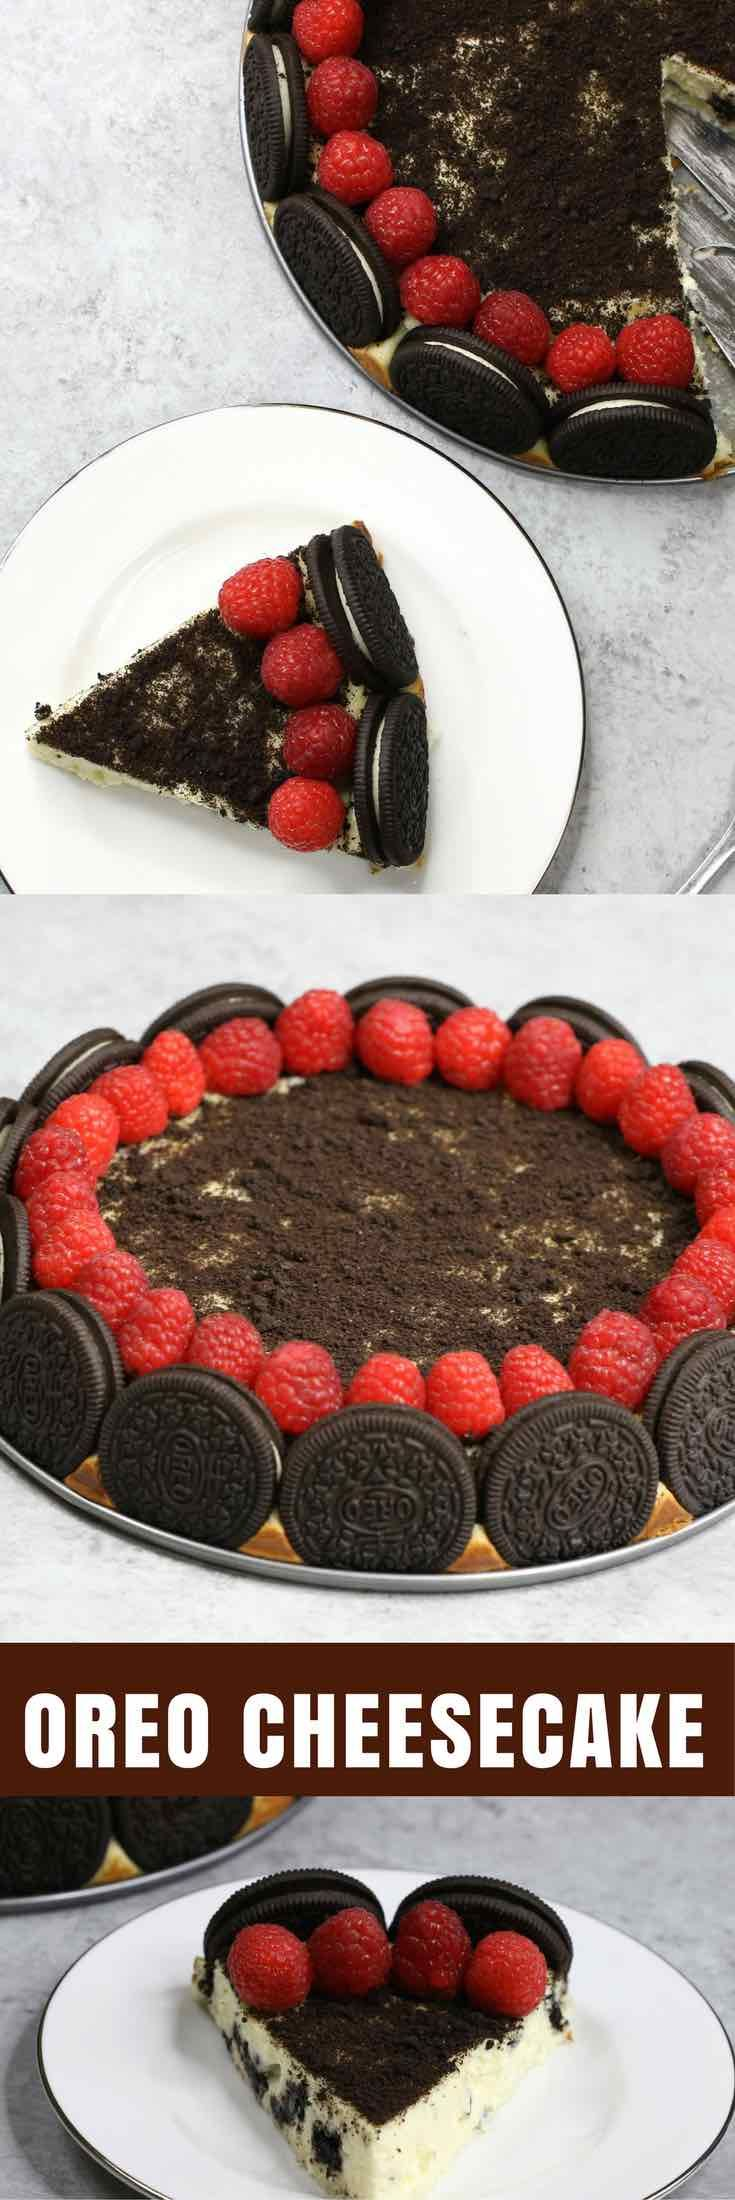 The Best Oreo Cheesecake – the easiest and most beautiful cake topped with cookies and cream crumbs and fresh raspberries. All you need is a few simple ingredients: oreo cookies, cream cheese, sugar, vanilla, eggs, sour cream and raspberries. Great for dessert, brunch, birthday parties or Mother's Day. Video recipe. | tipbuzz.com